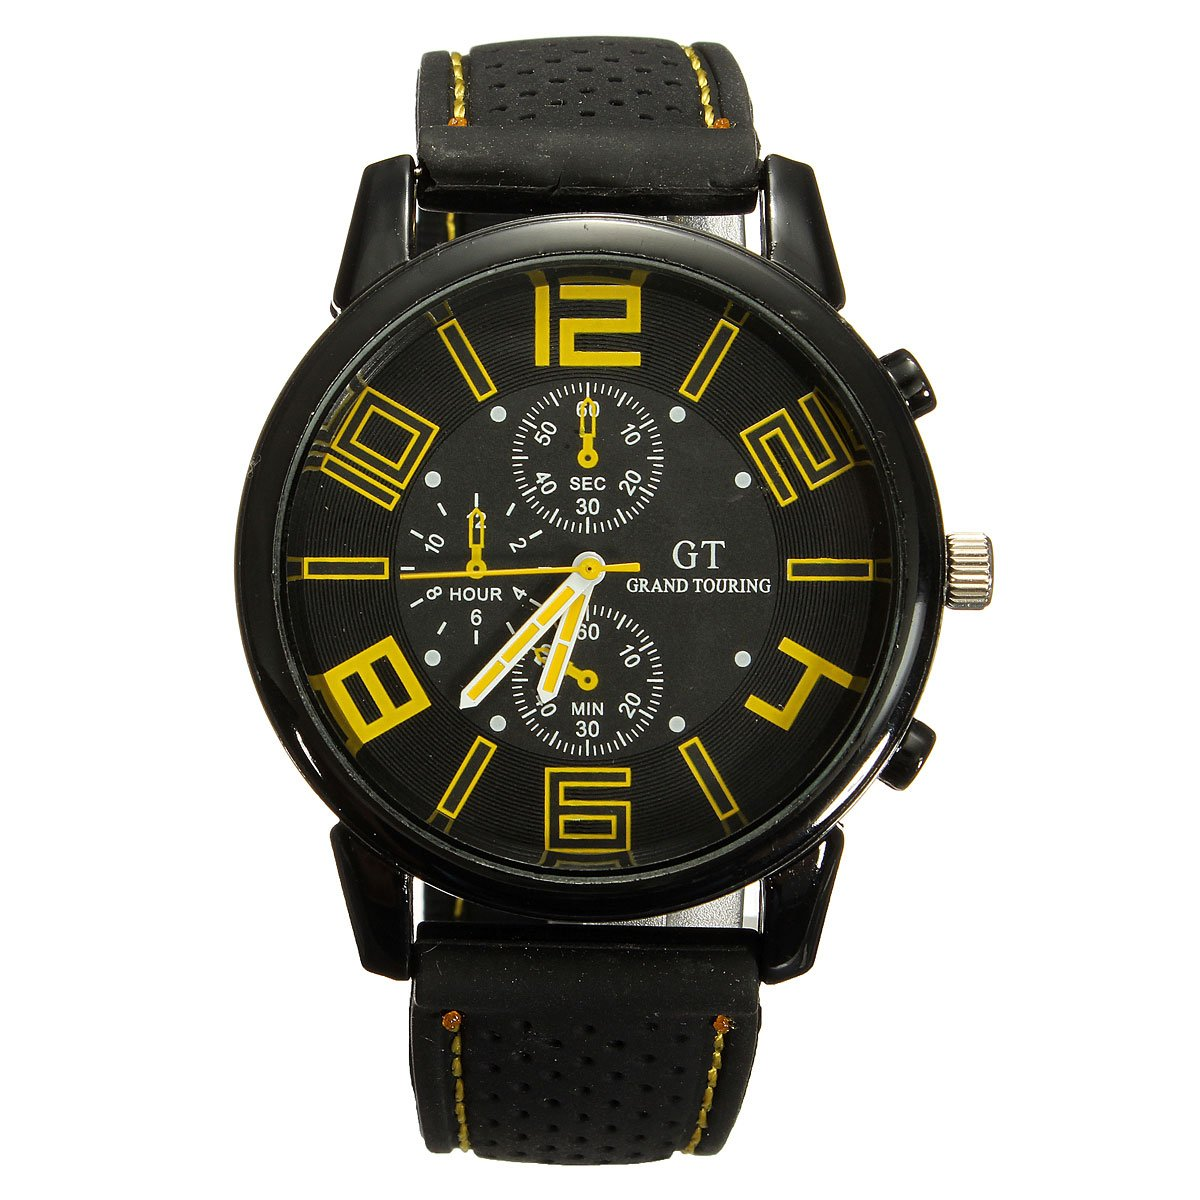 Grand Touring Bracelet Watch Man Quartz Analog Silicone Quartz Wrist Watch Big Dial Yellow and Black super speed v6 v0153 by check dial quartz wrist watch for men black yellow while 1 x lr626